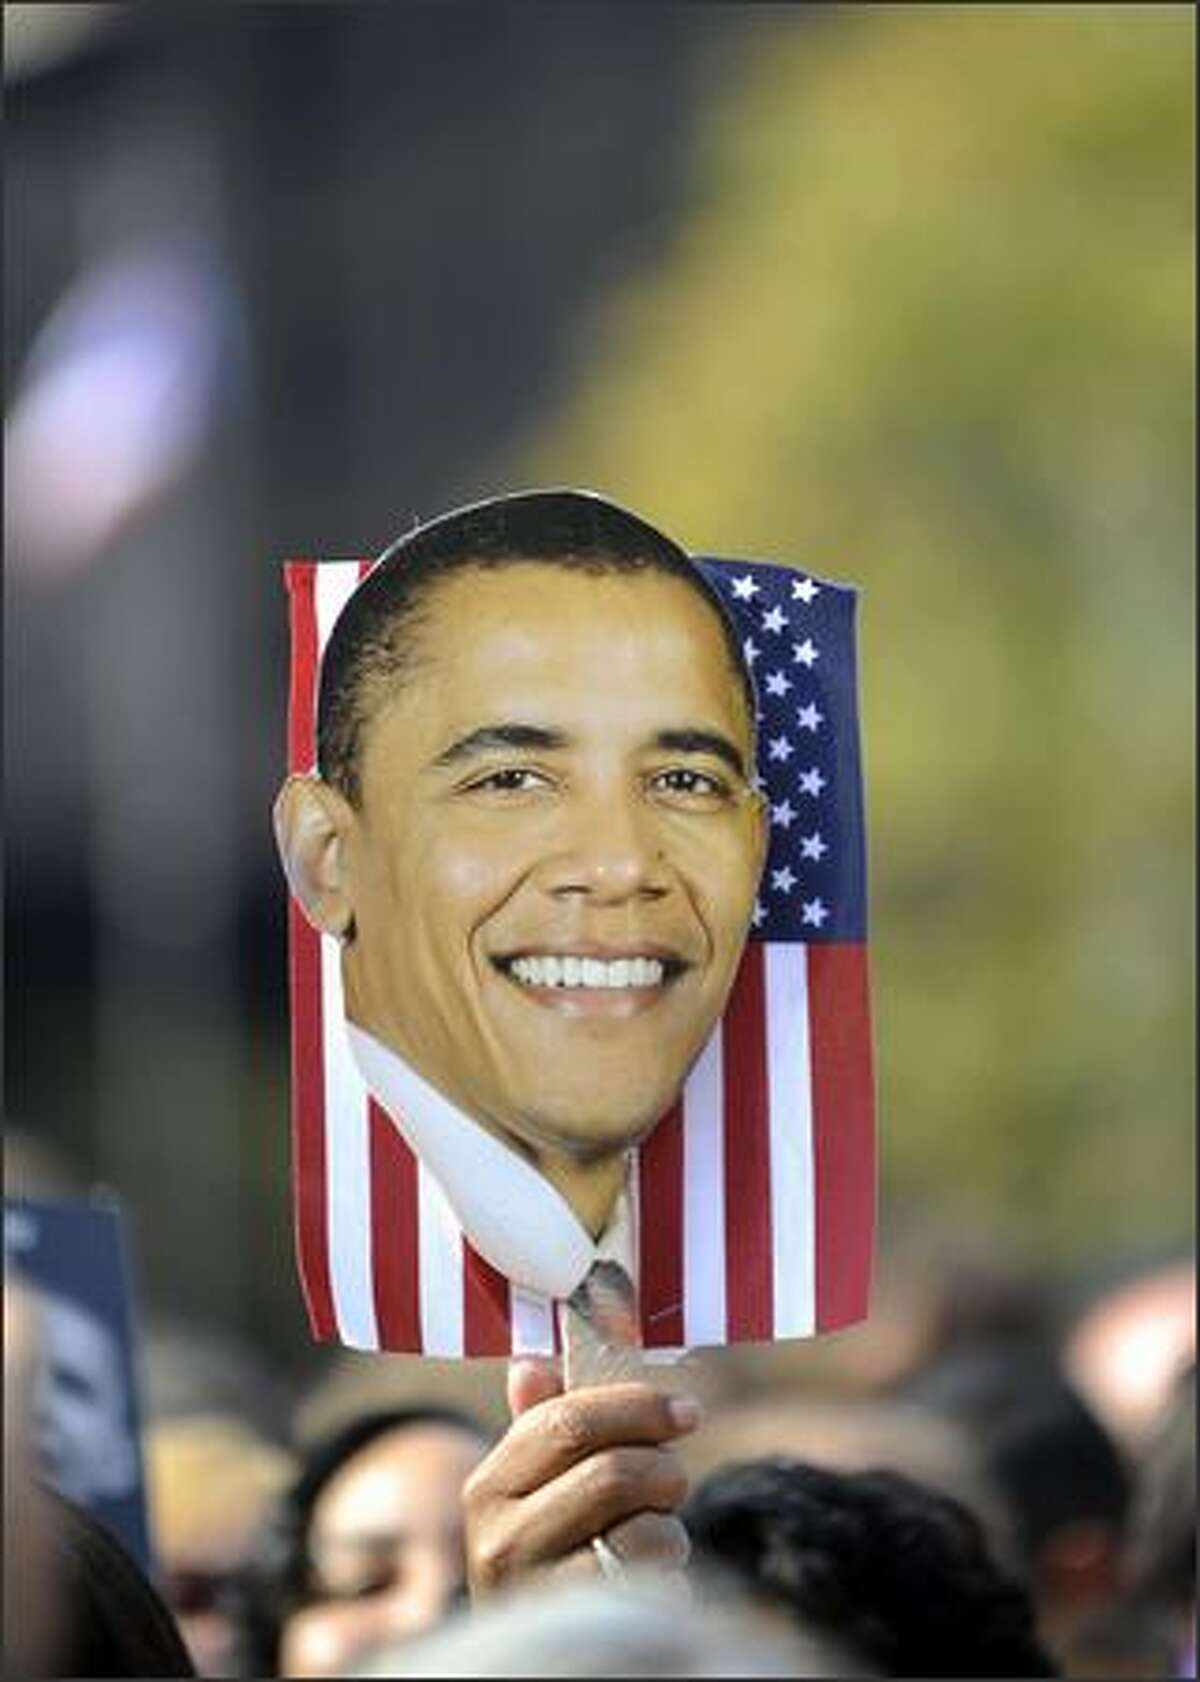 A supporter of Democratic presidential candidate Illinois Senator Barack Obama holds a U.S. flag and a picture of Obama during a rally at Ohio State House in Columbus, Ohio, on Sunday.